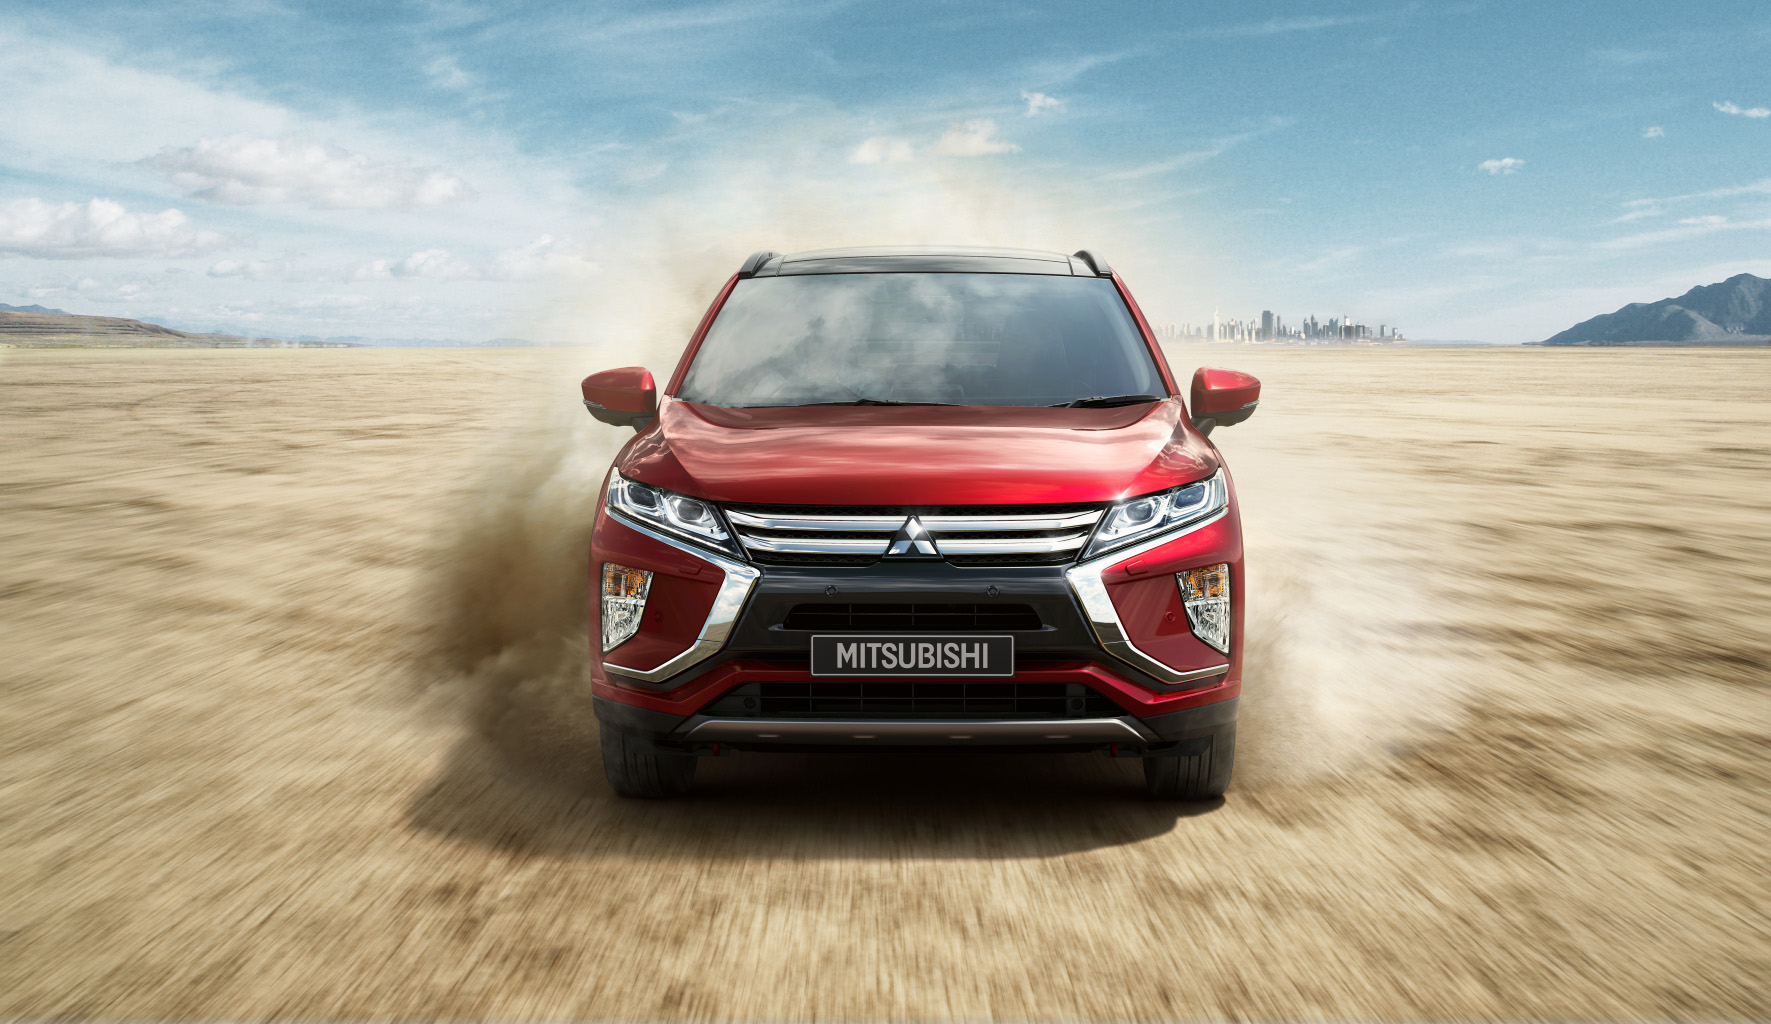 Welcome to Mitsubishi Motors in Europe